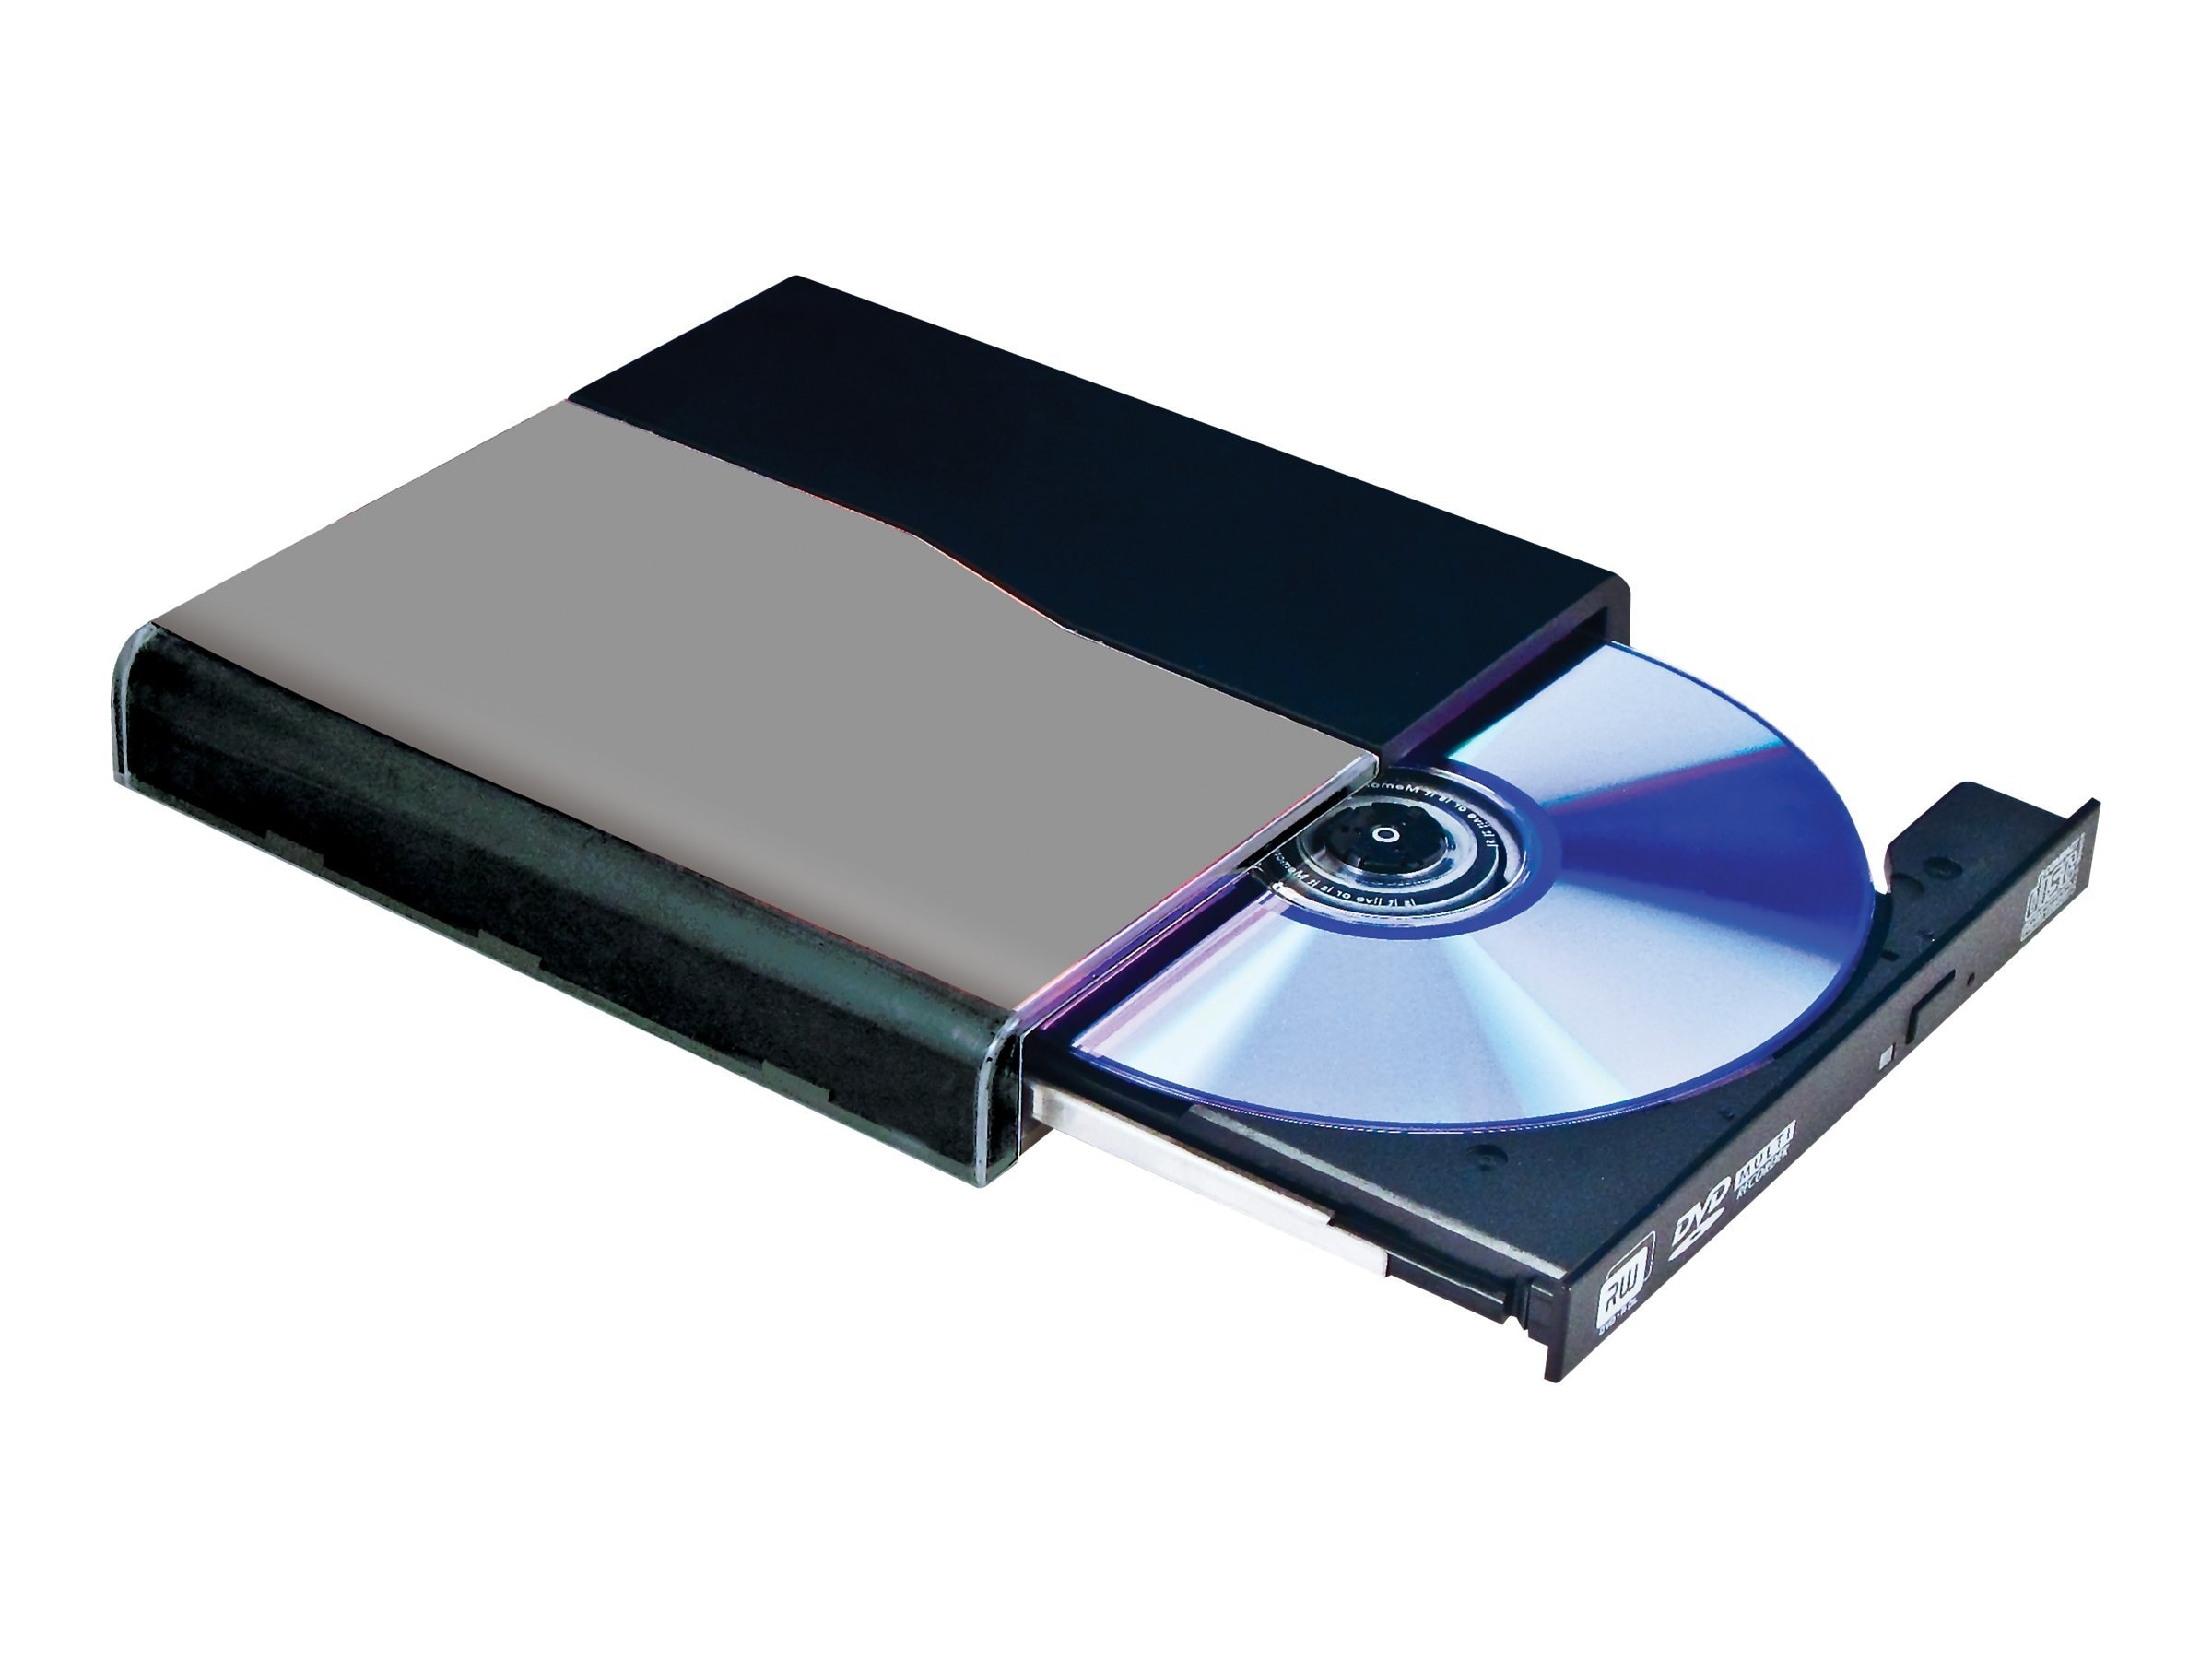 I O Magic DVD+ -RW Slim External Drive